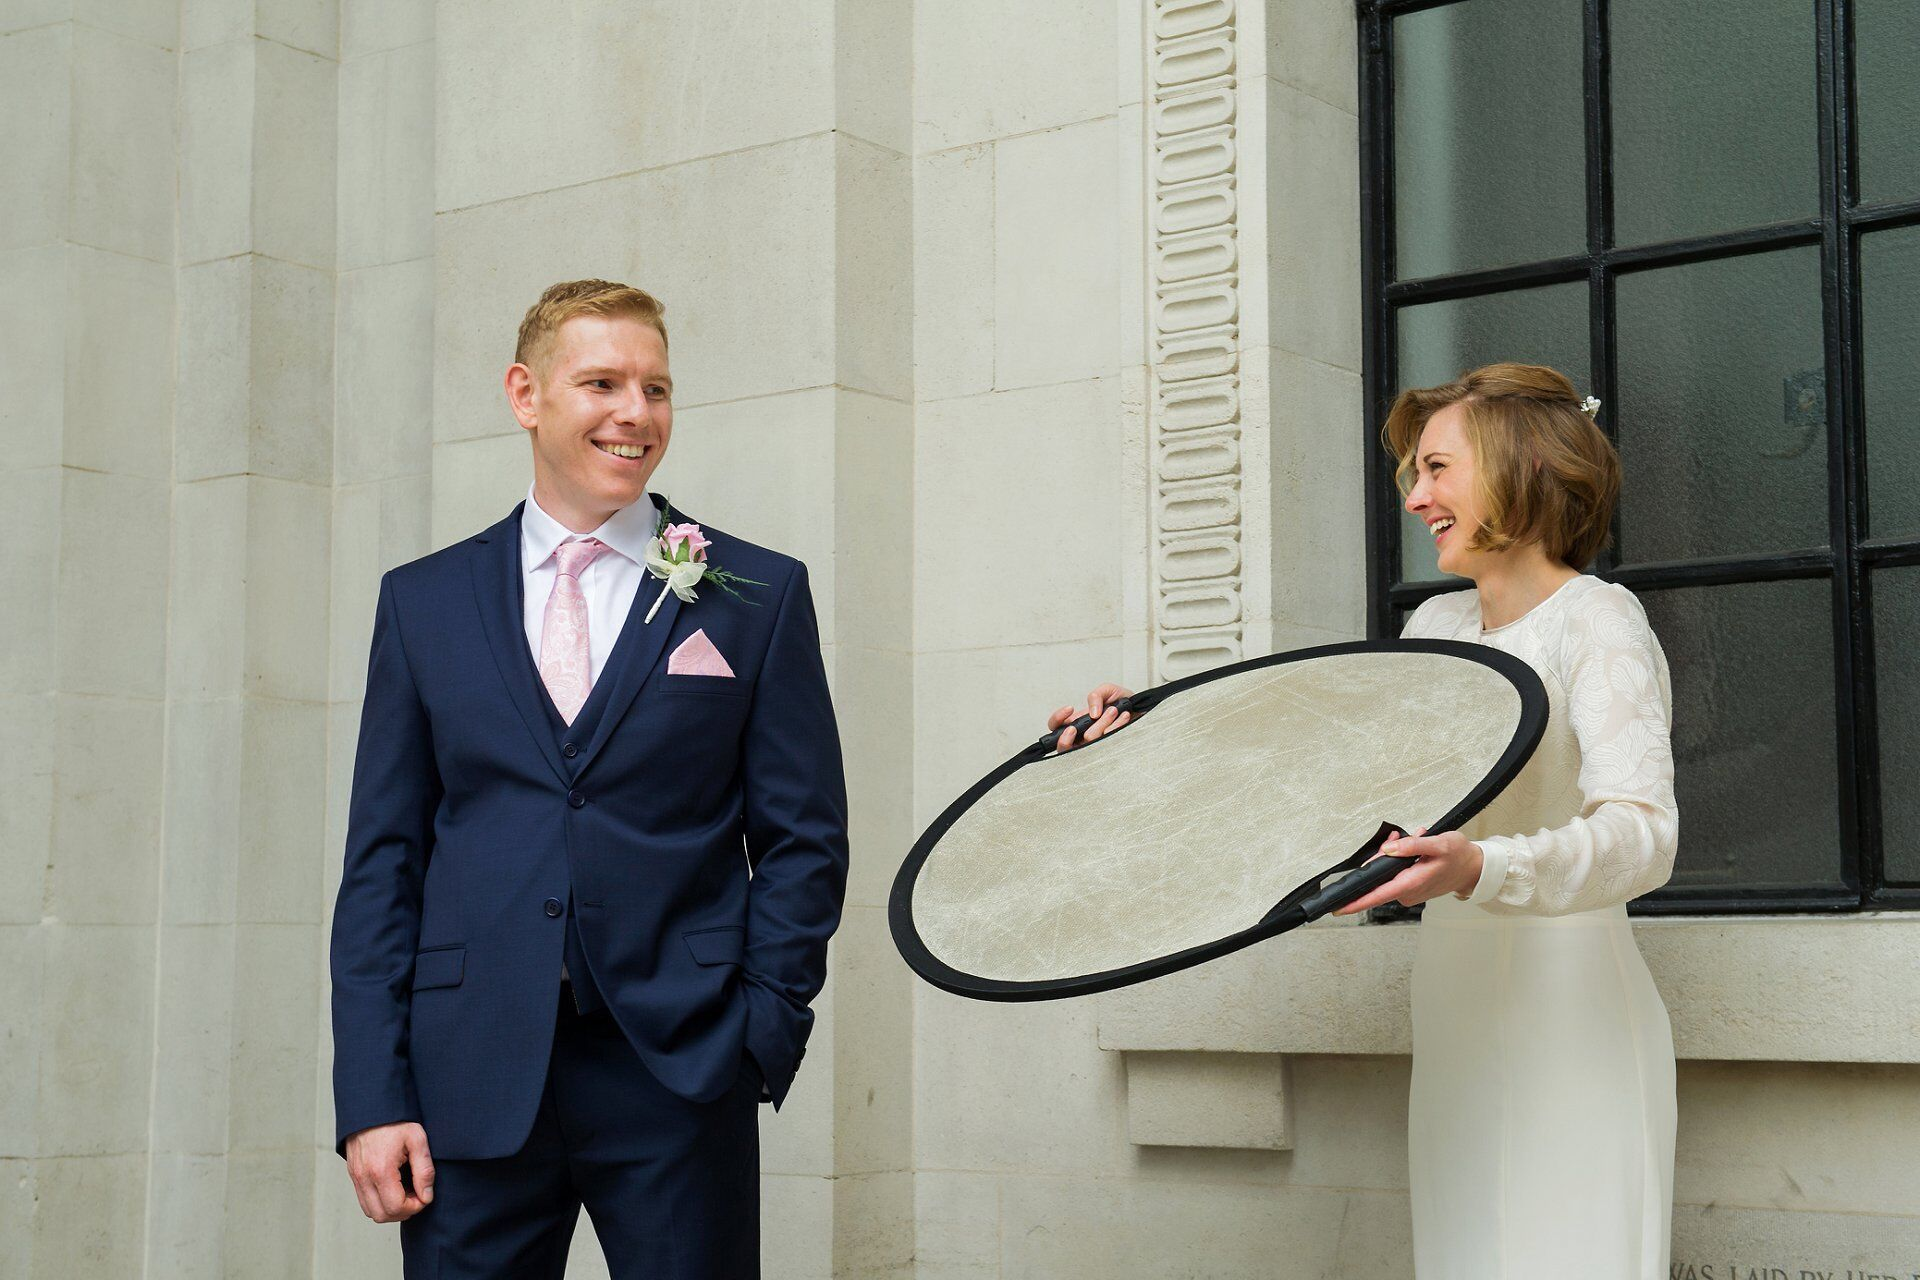 emma duggan photography for fun unique wedding photographs throughout london especially westminster register office at old marylebone town hall